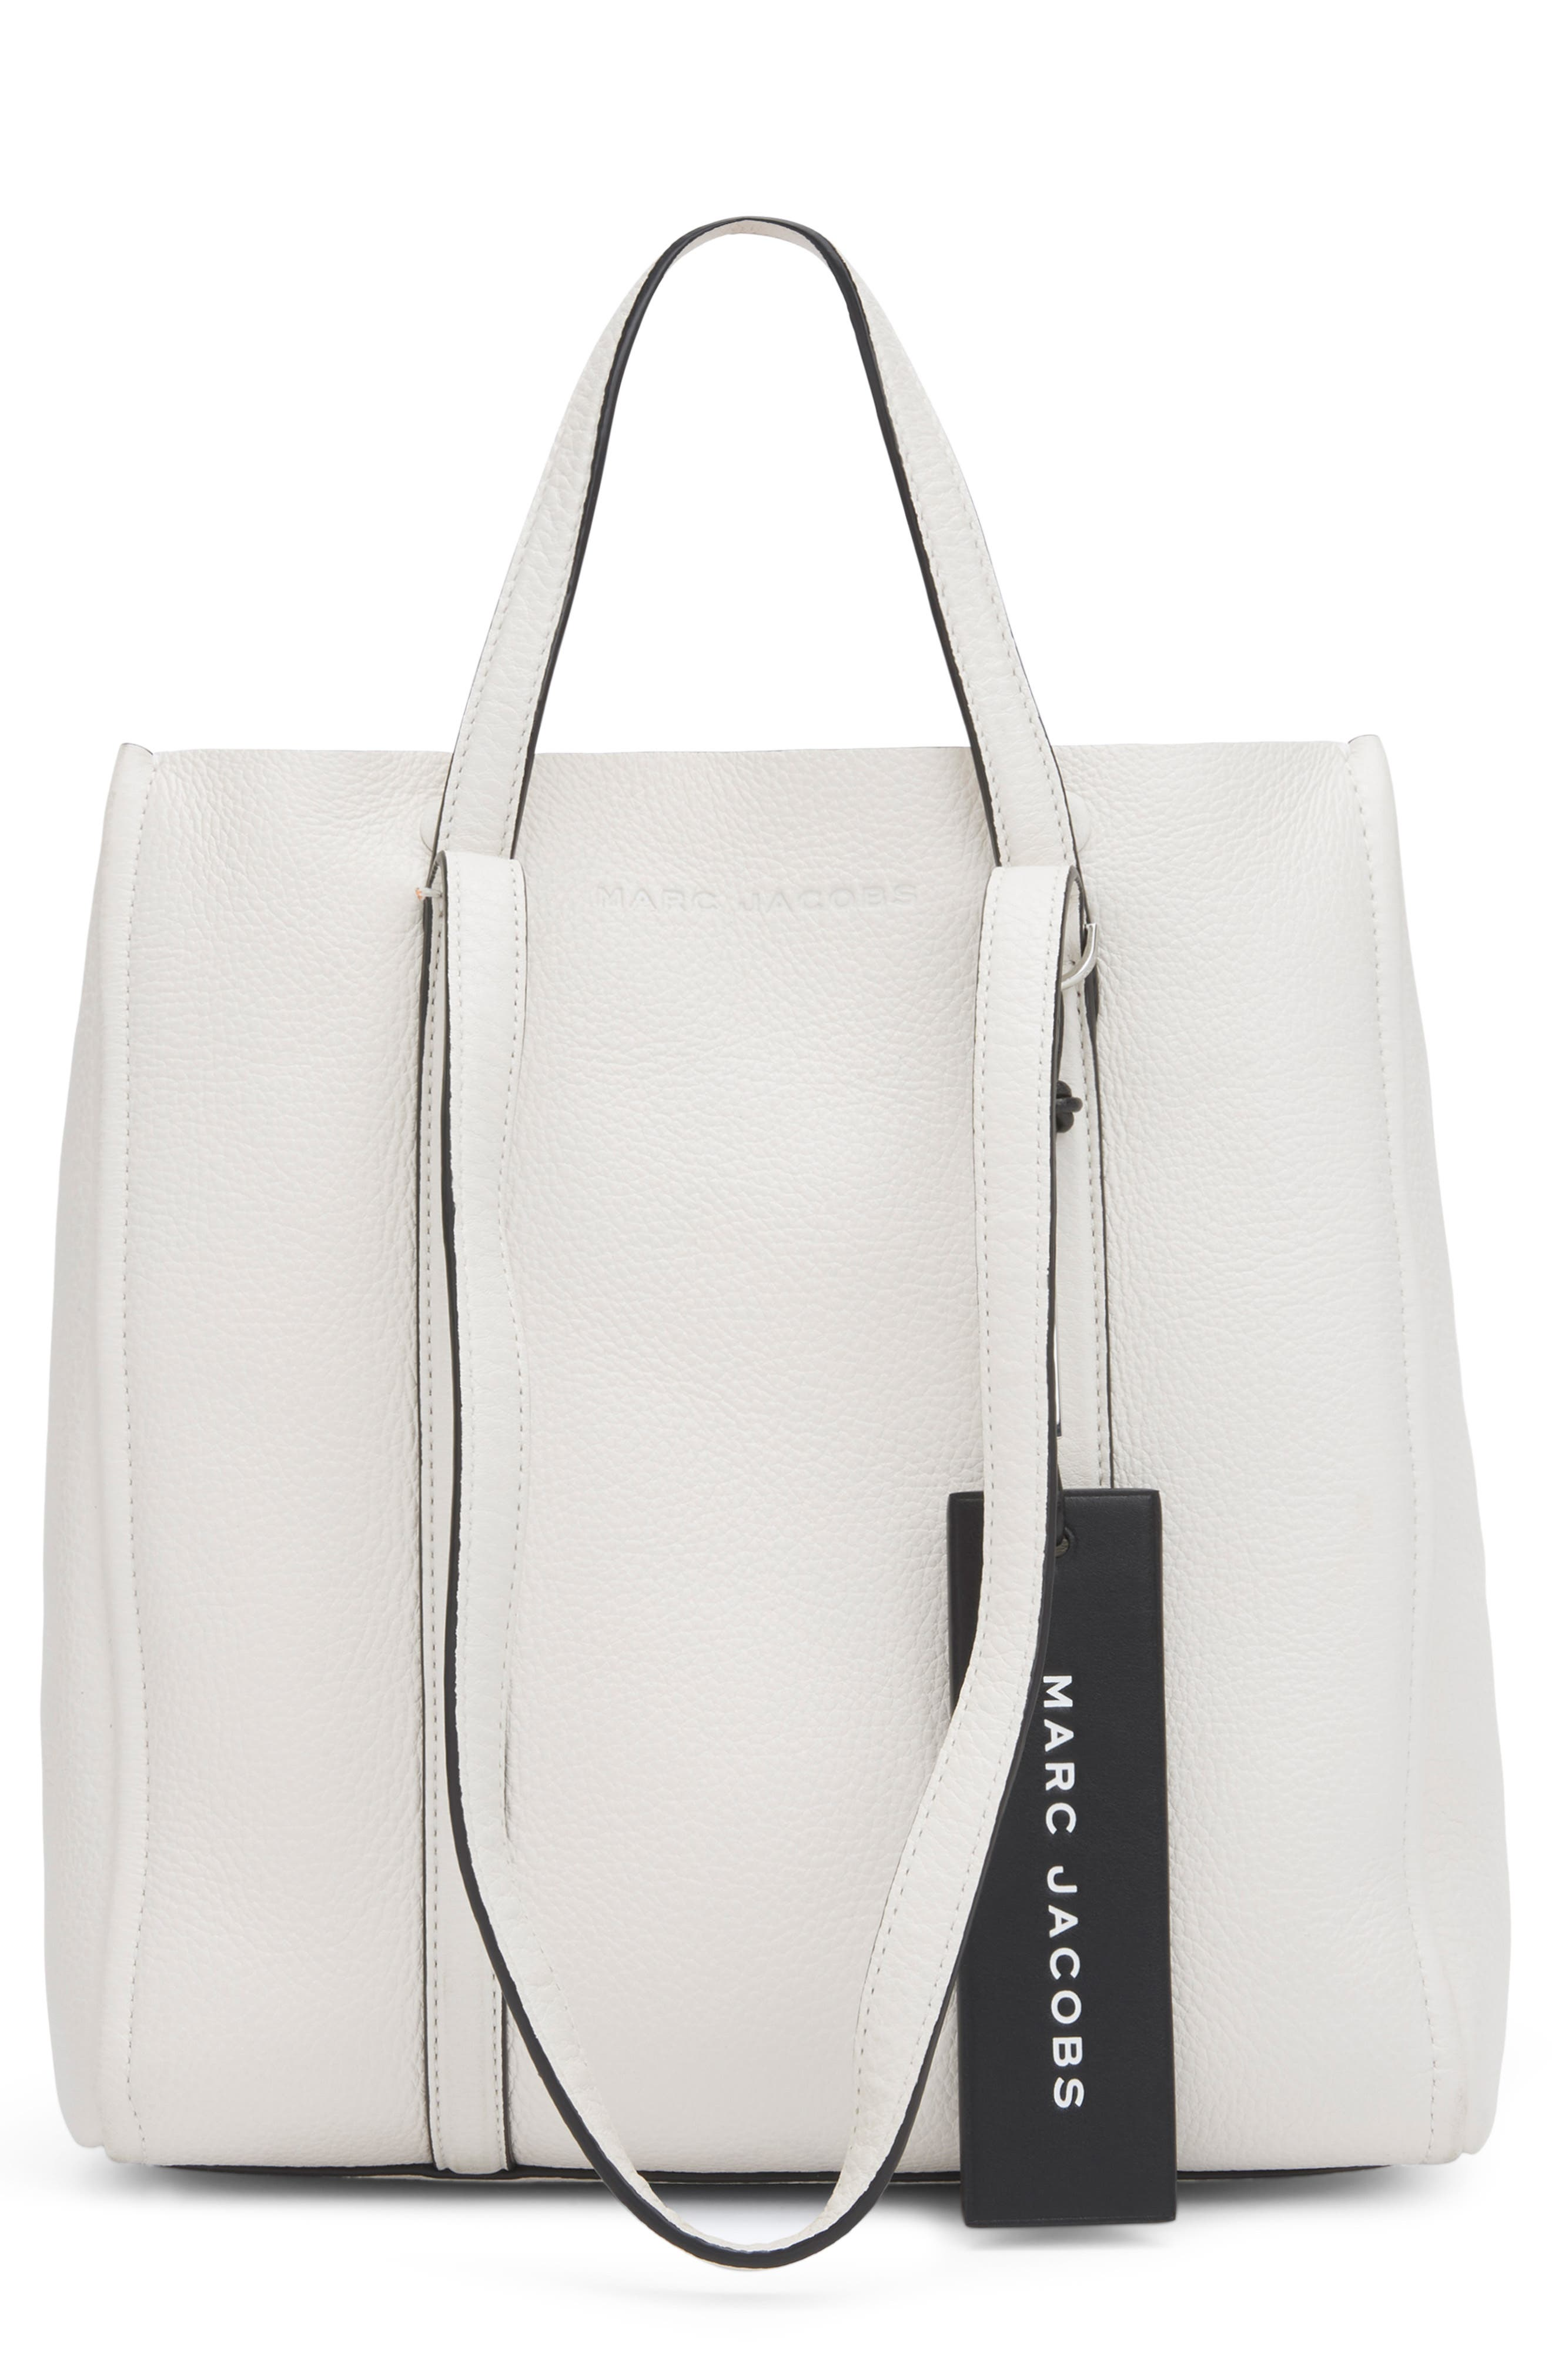 MARC JACOBS The Tag 27 Leather Tote, Main, color, PORCELAIN